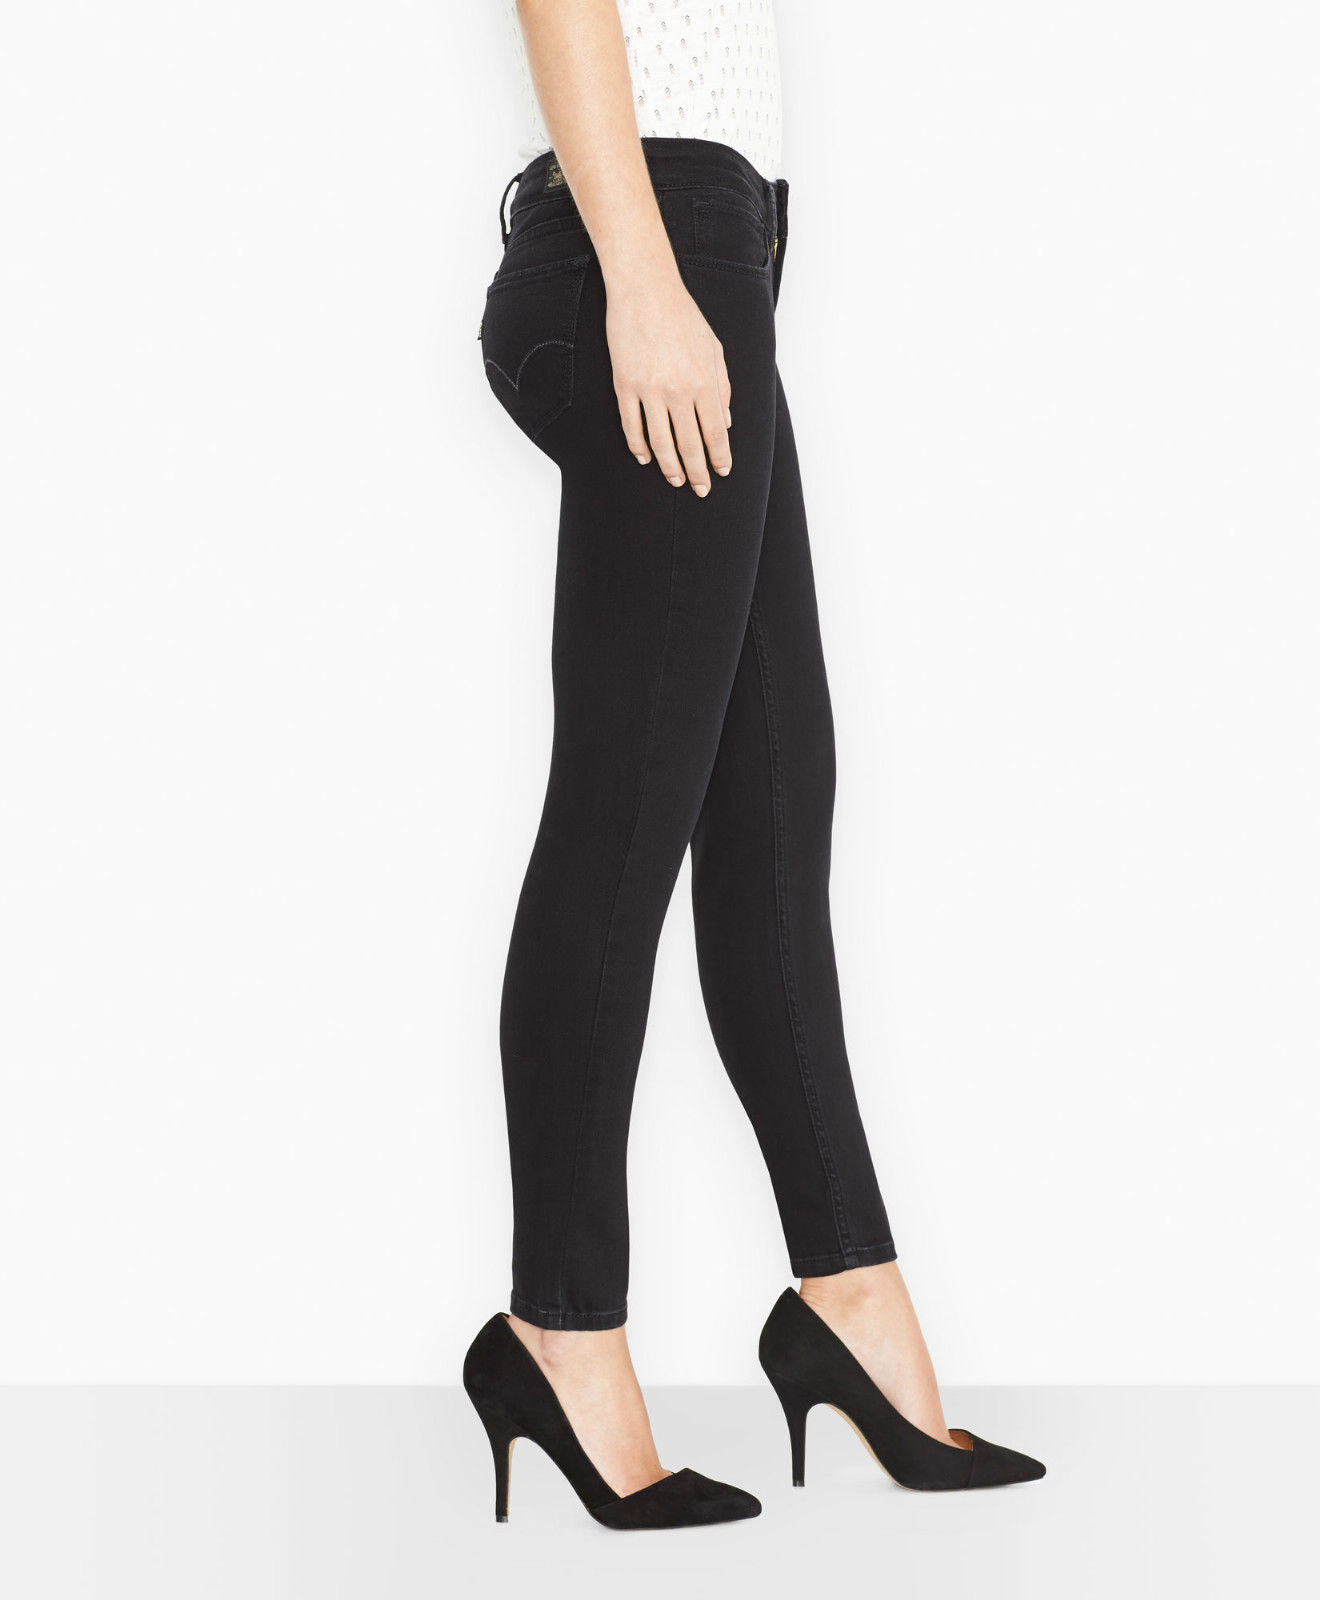 Levi's Juniors 535 Legging Jean - Black (0201)